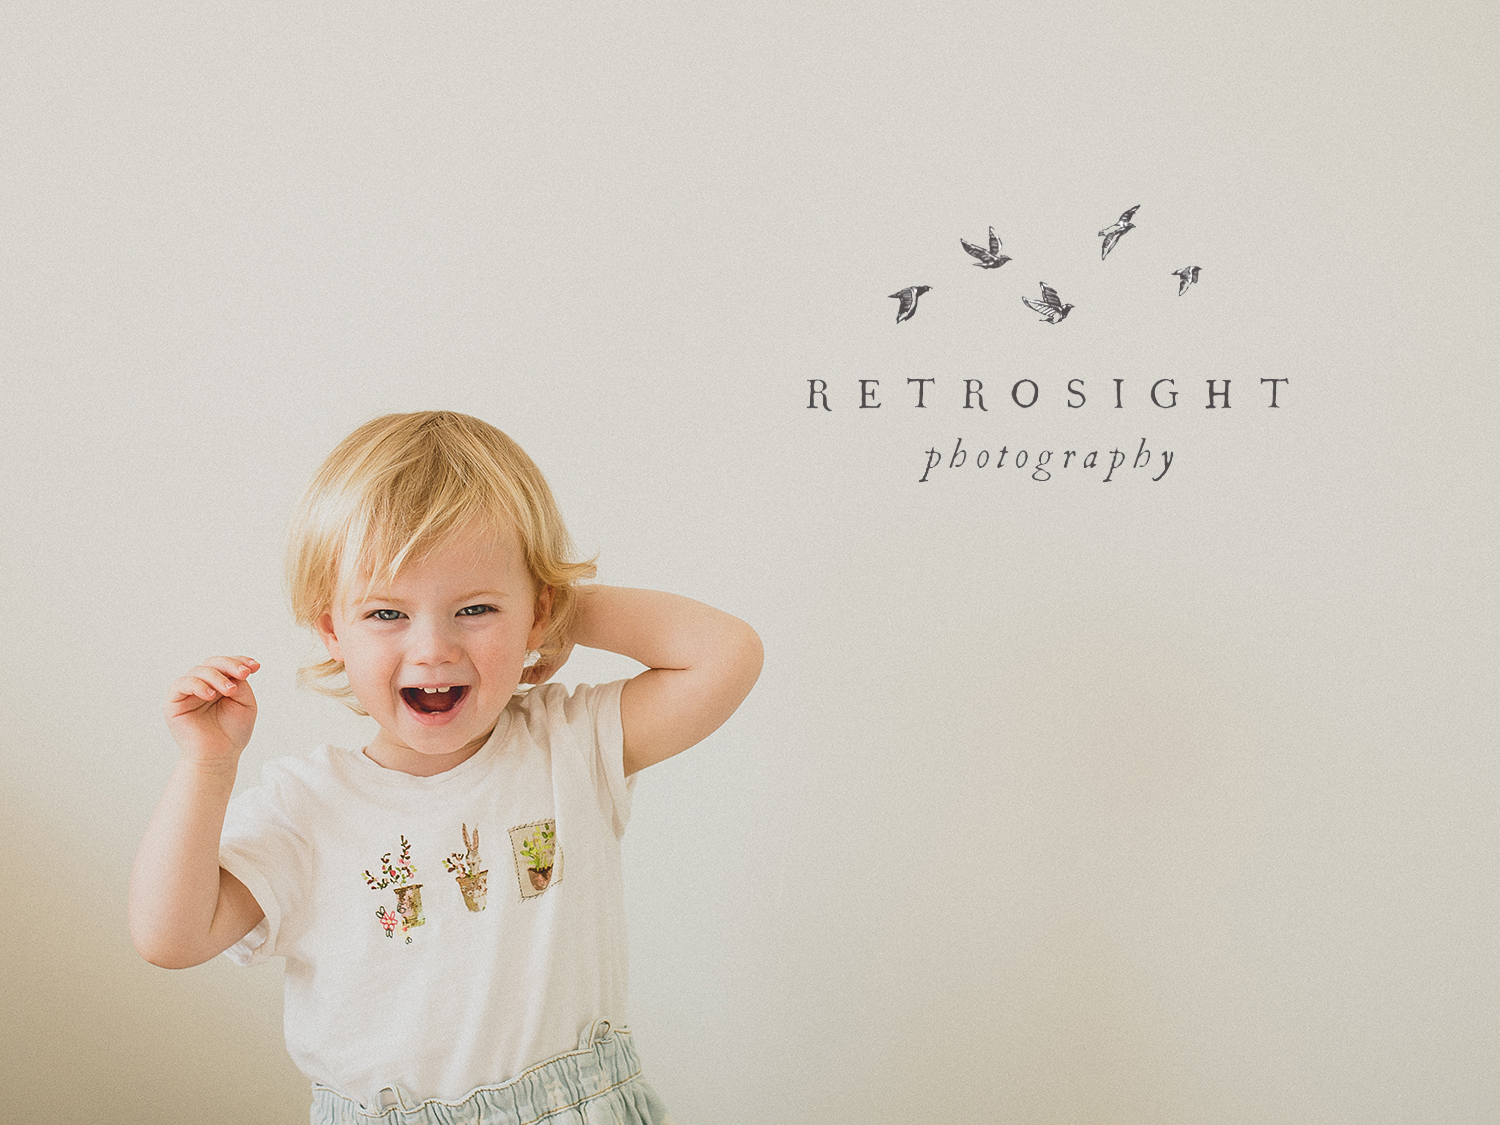 Retrosight Photography